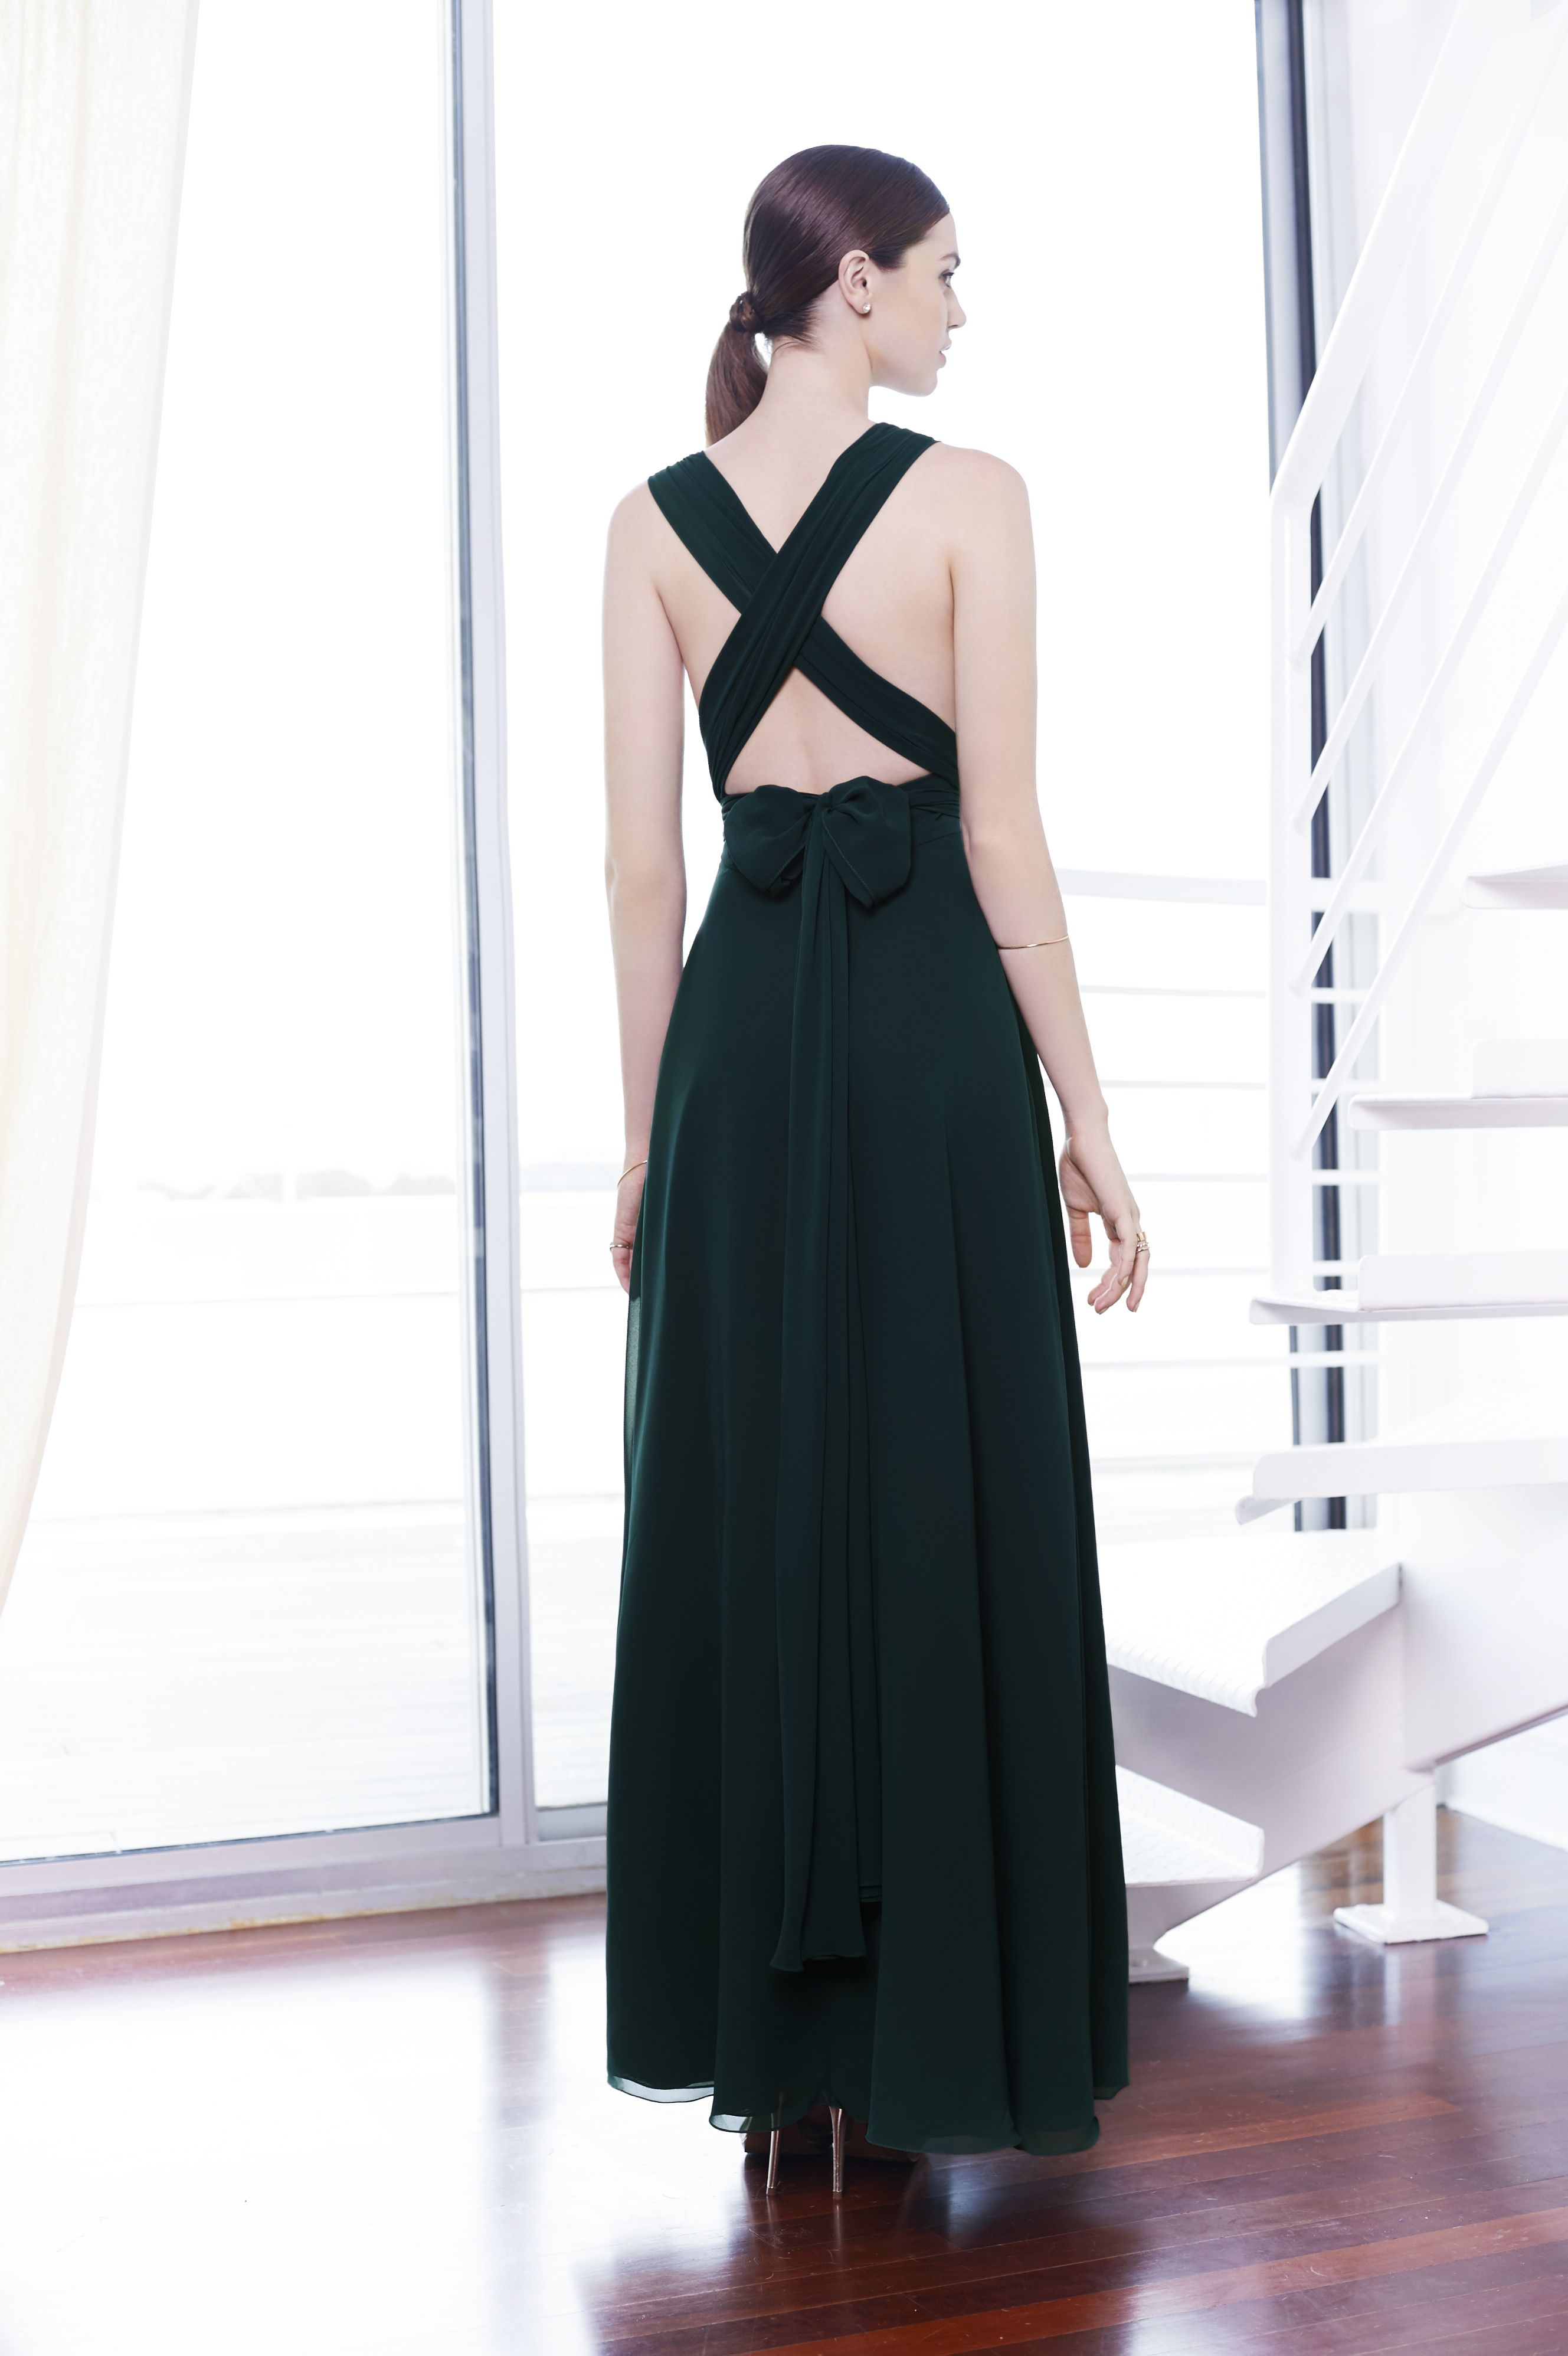 Colour by Kenneth Winston Style 5219 | Dresses can be modified to long or short. #specialoccasion #bridesmaid #infinitydress